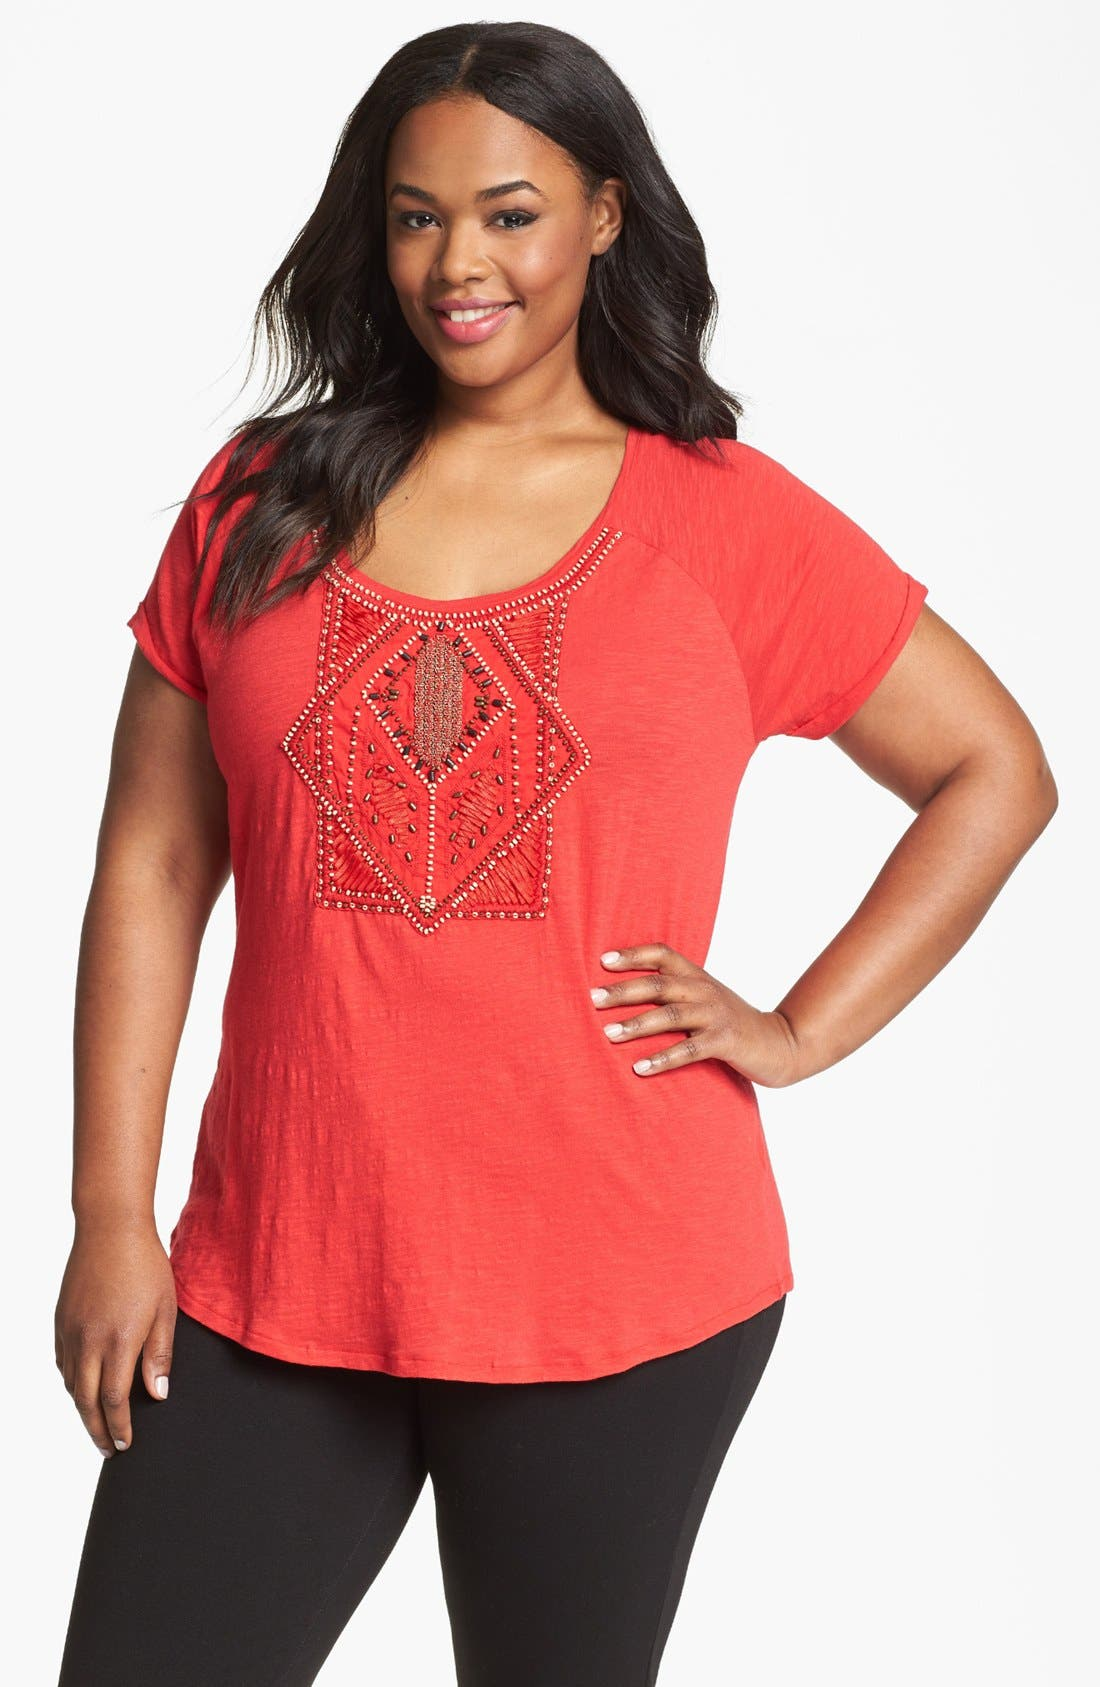 Main Image - Lucky Brand 'Avani' Embellished Cotton Tee (Plus Size)